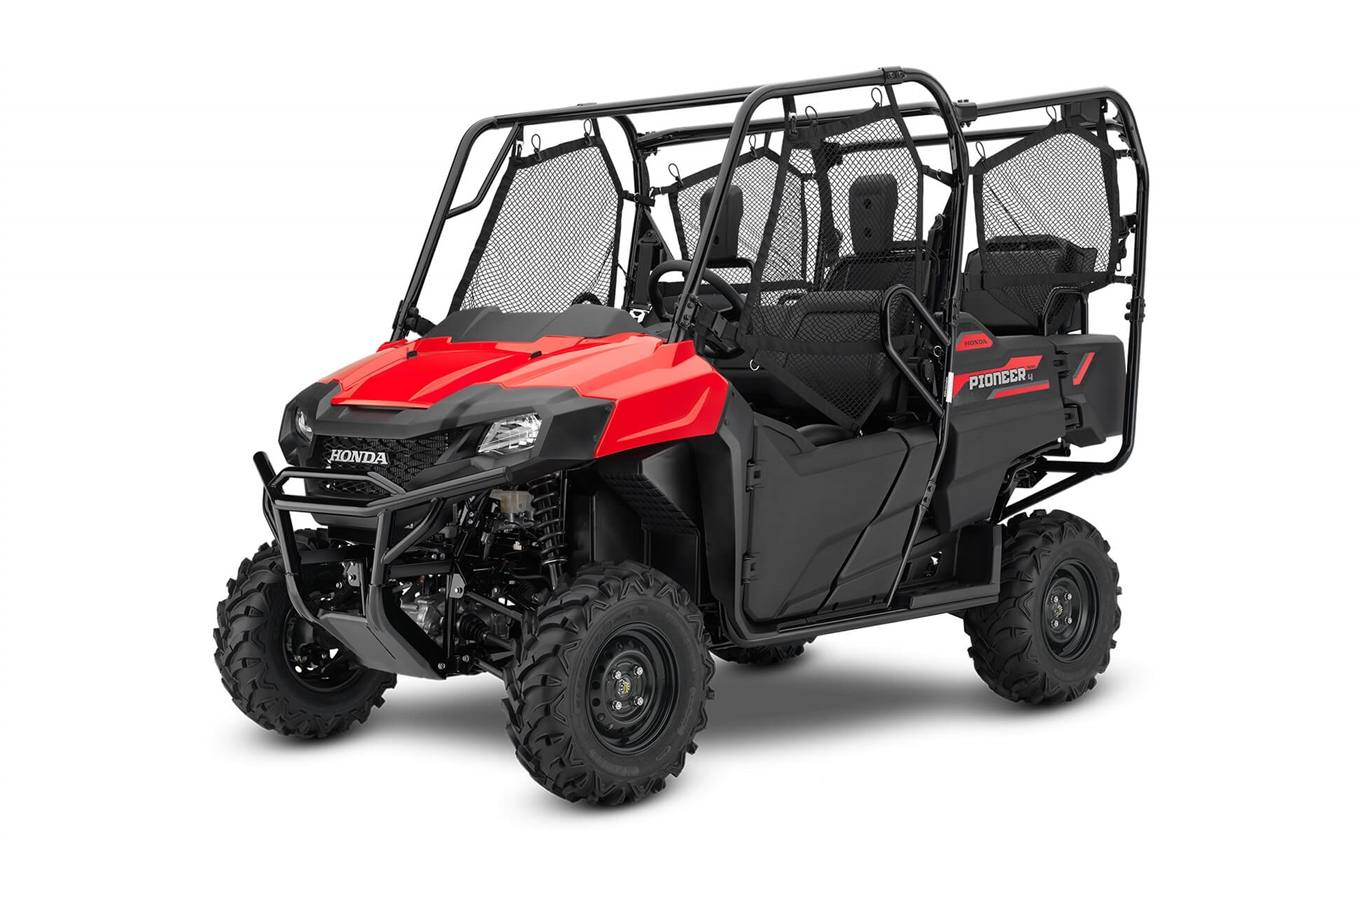 2021 Honda Pioneer 700-4 For Sale In Fairfield, Oh. Honda Of with Ohio Rut 2021